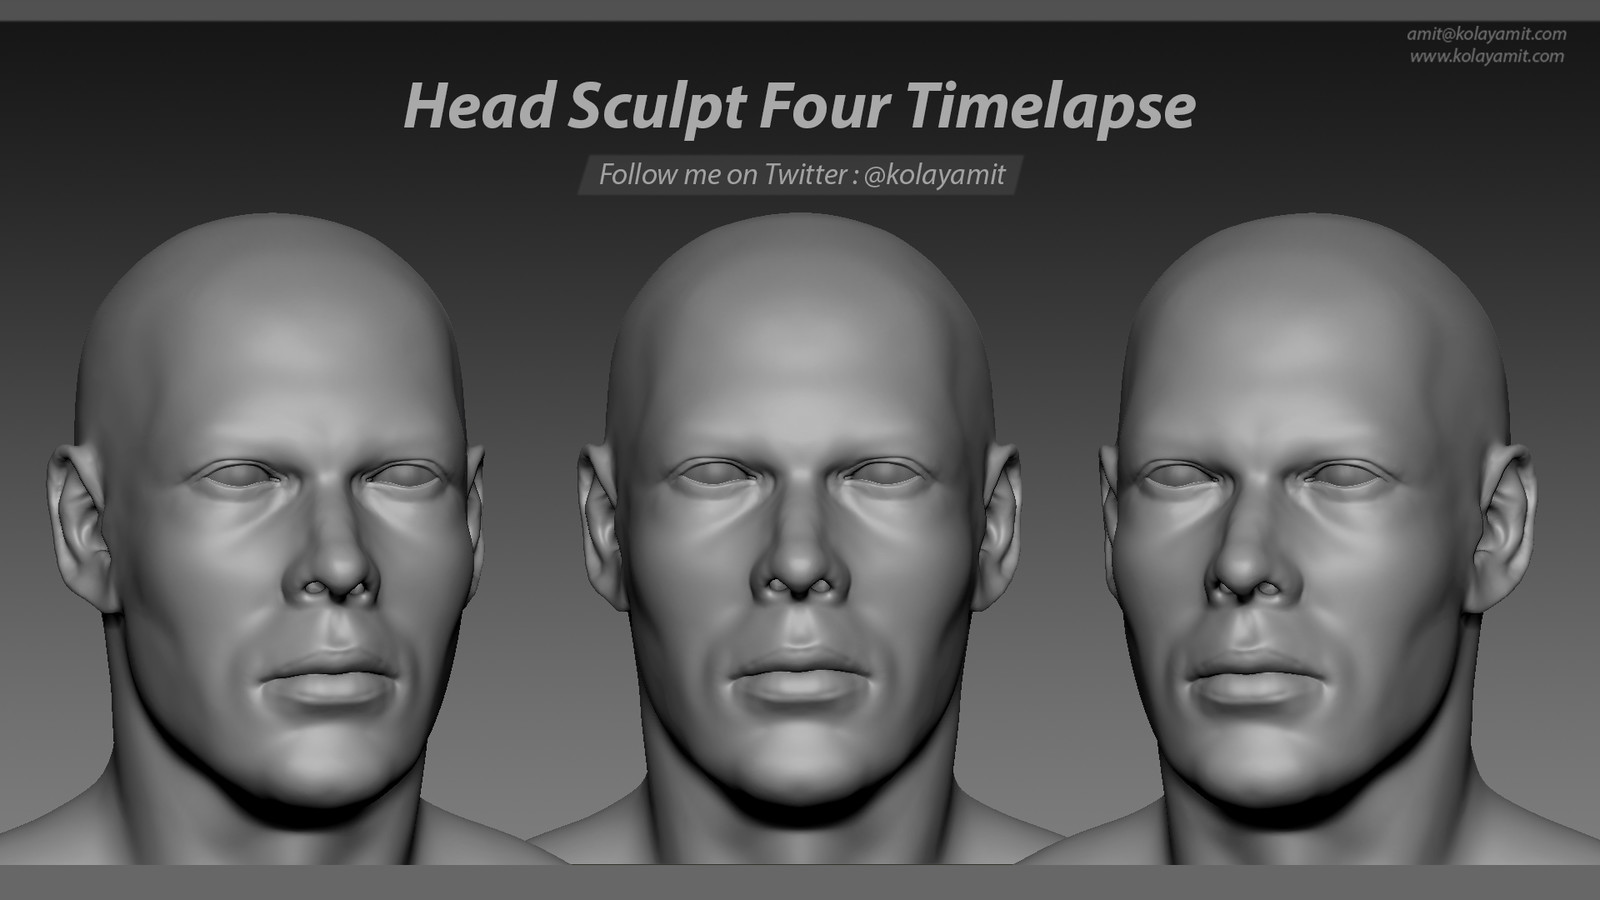 Head Sculpt Four Timelapse